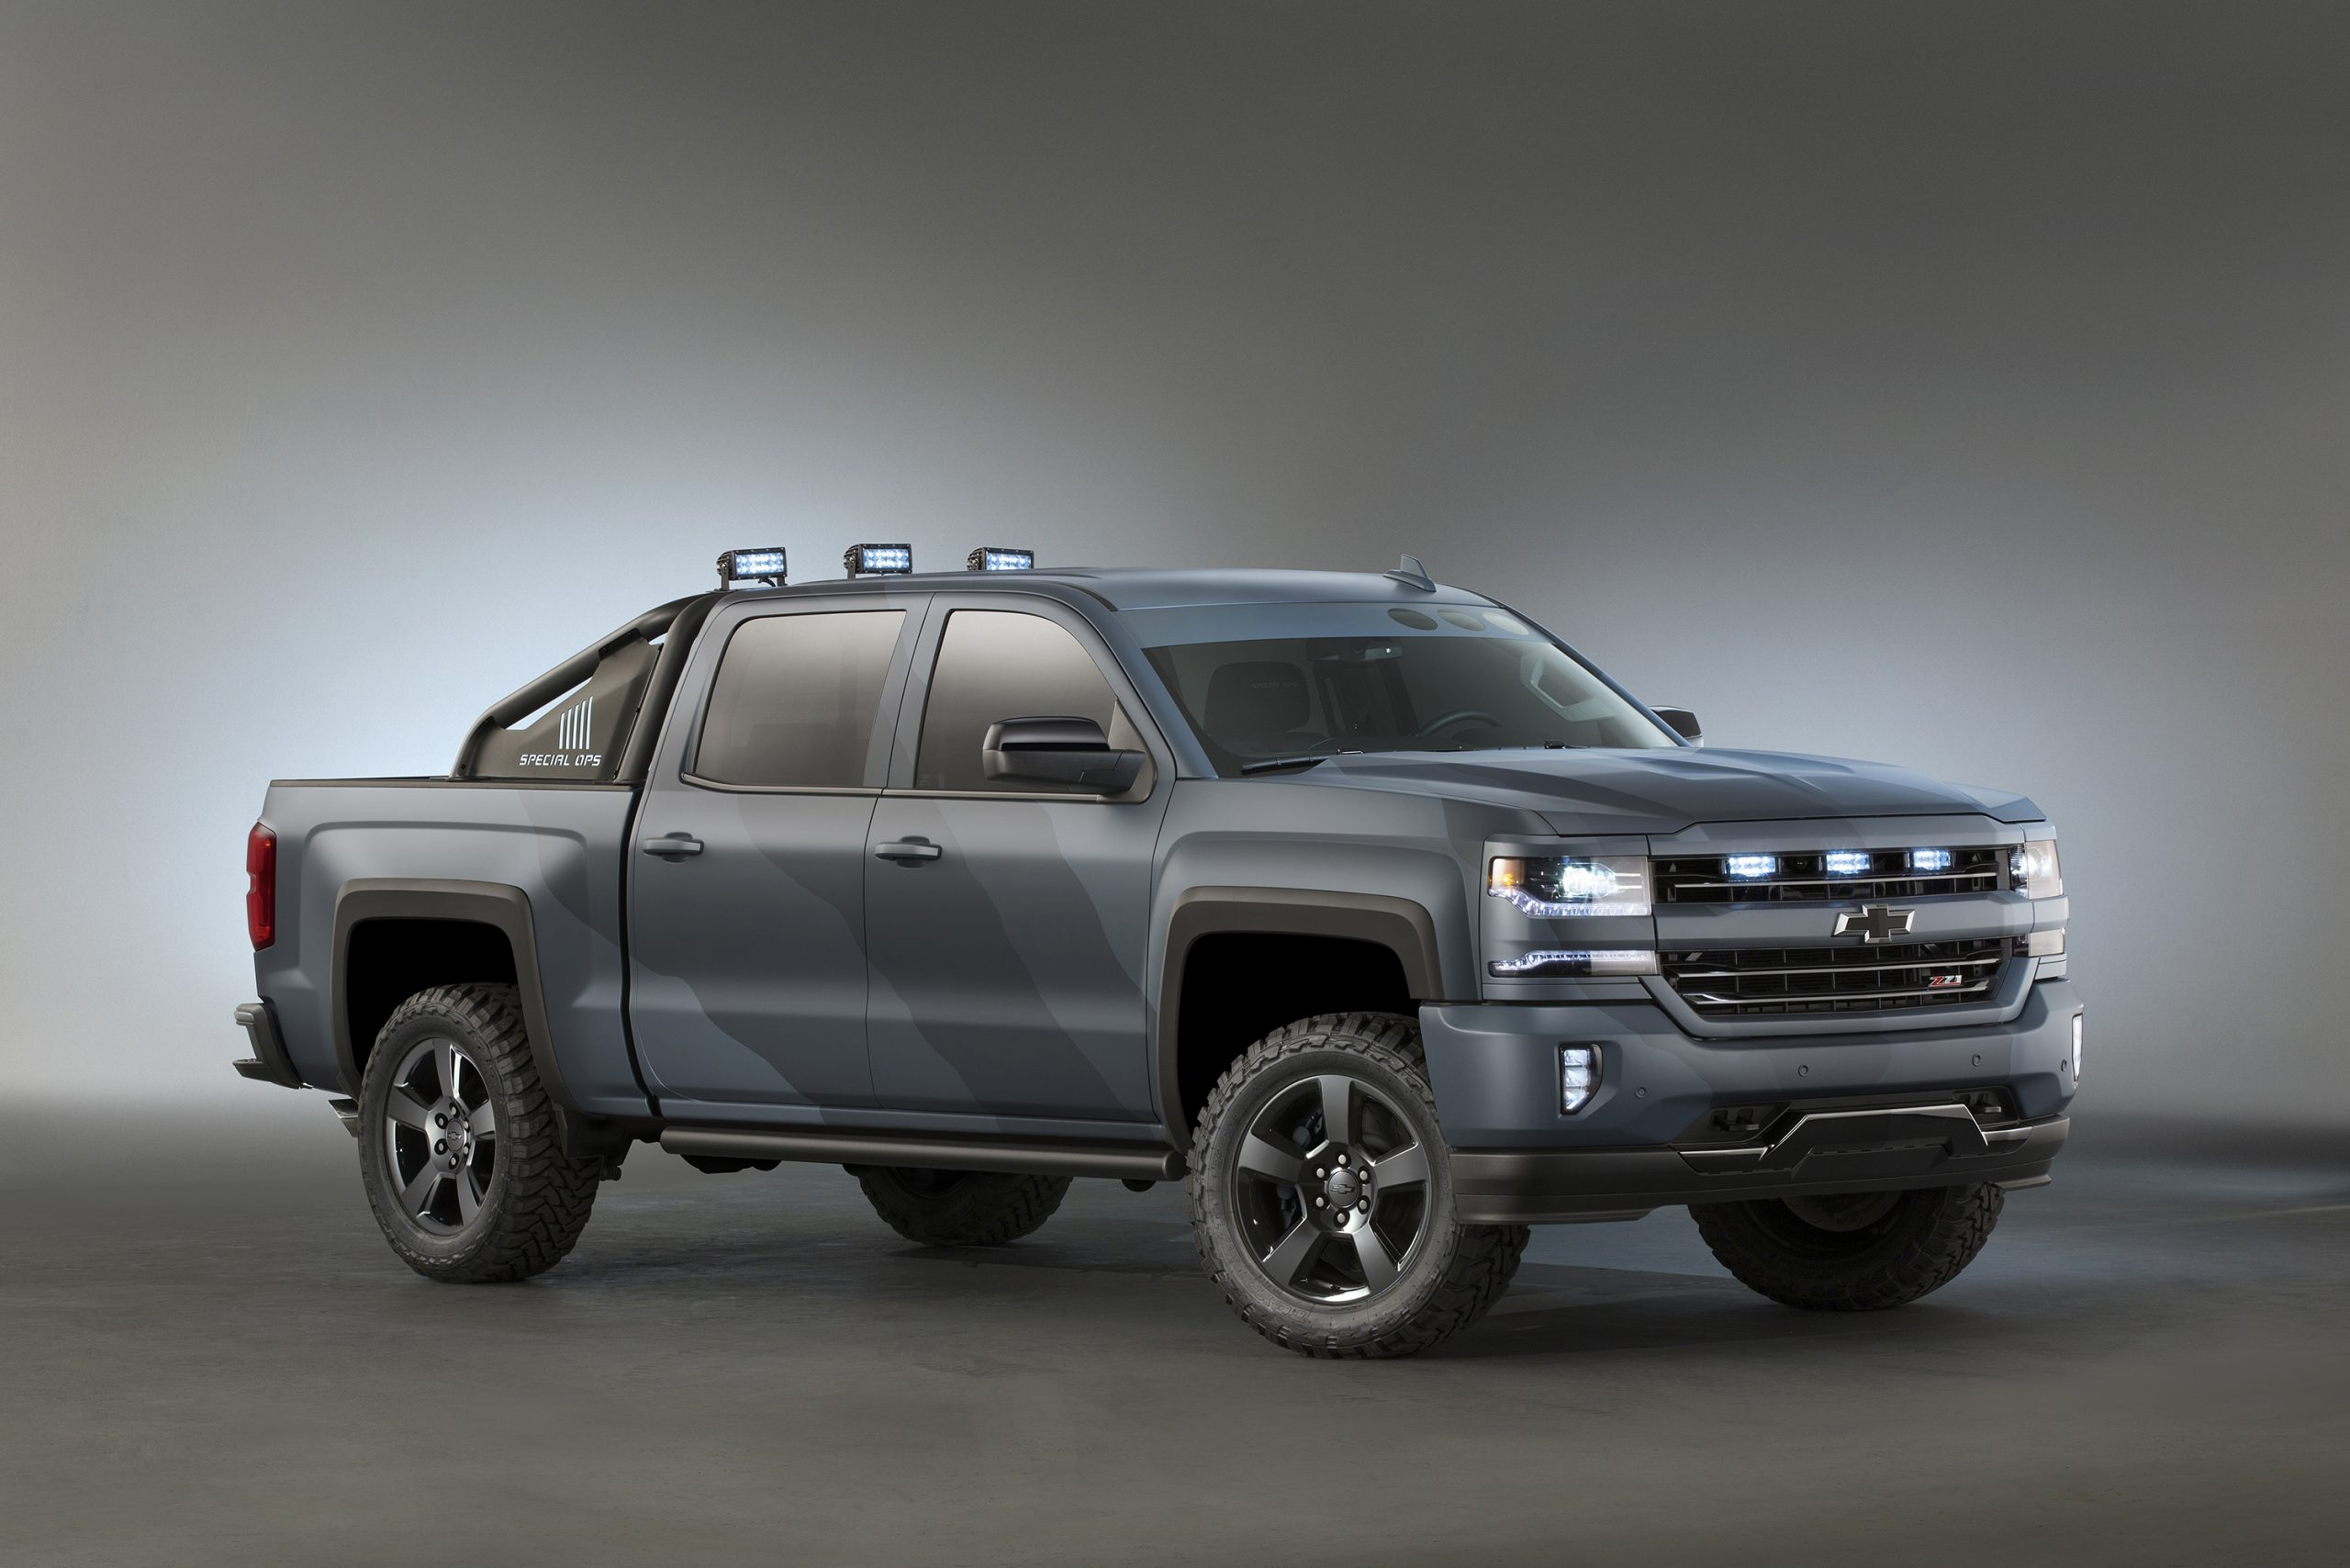 Chevrolet Introduces Silverado Special Ops Concept 2021 Chevy Silverado 1500 Gross Vehicle Weight, Grill Guard, Horsepower